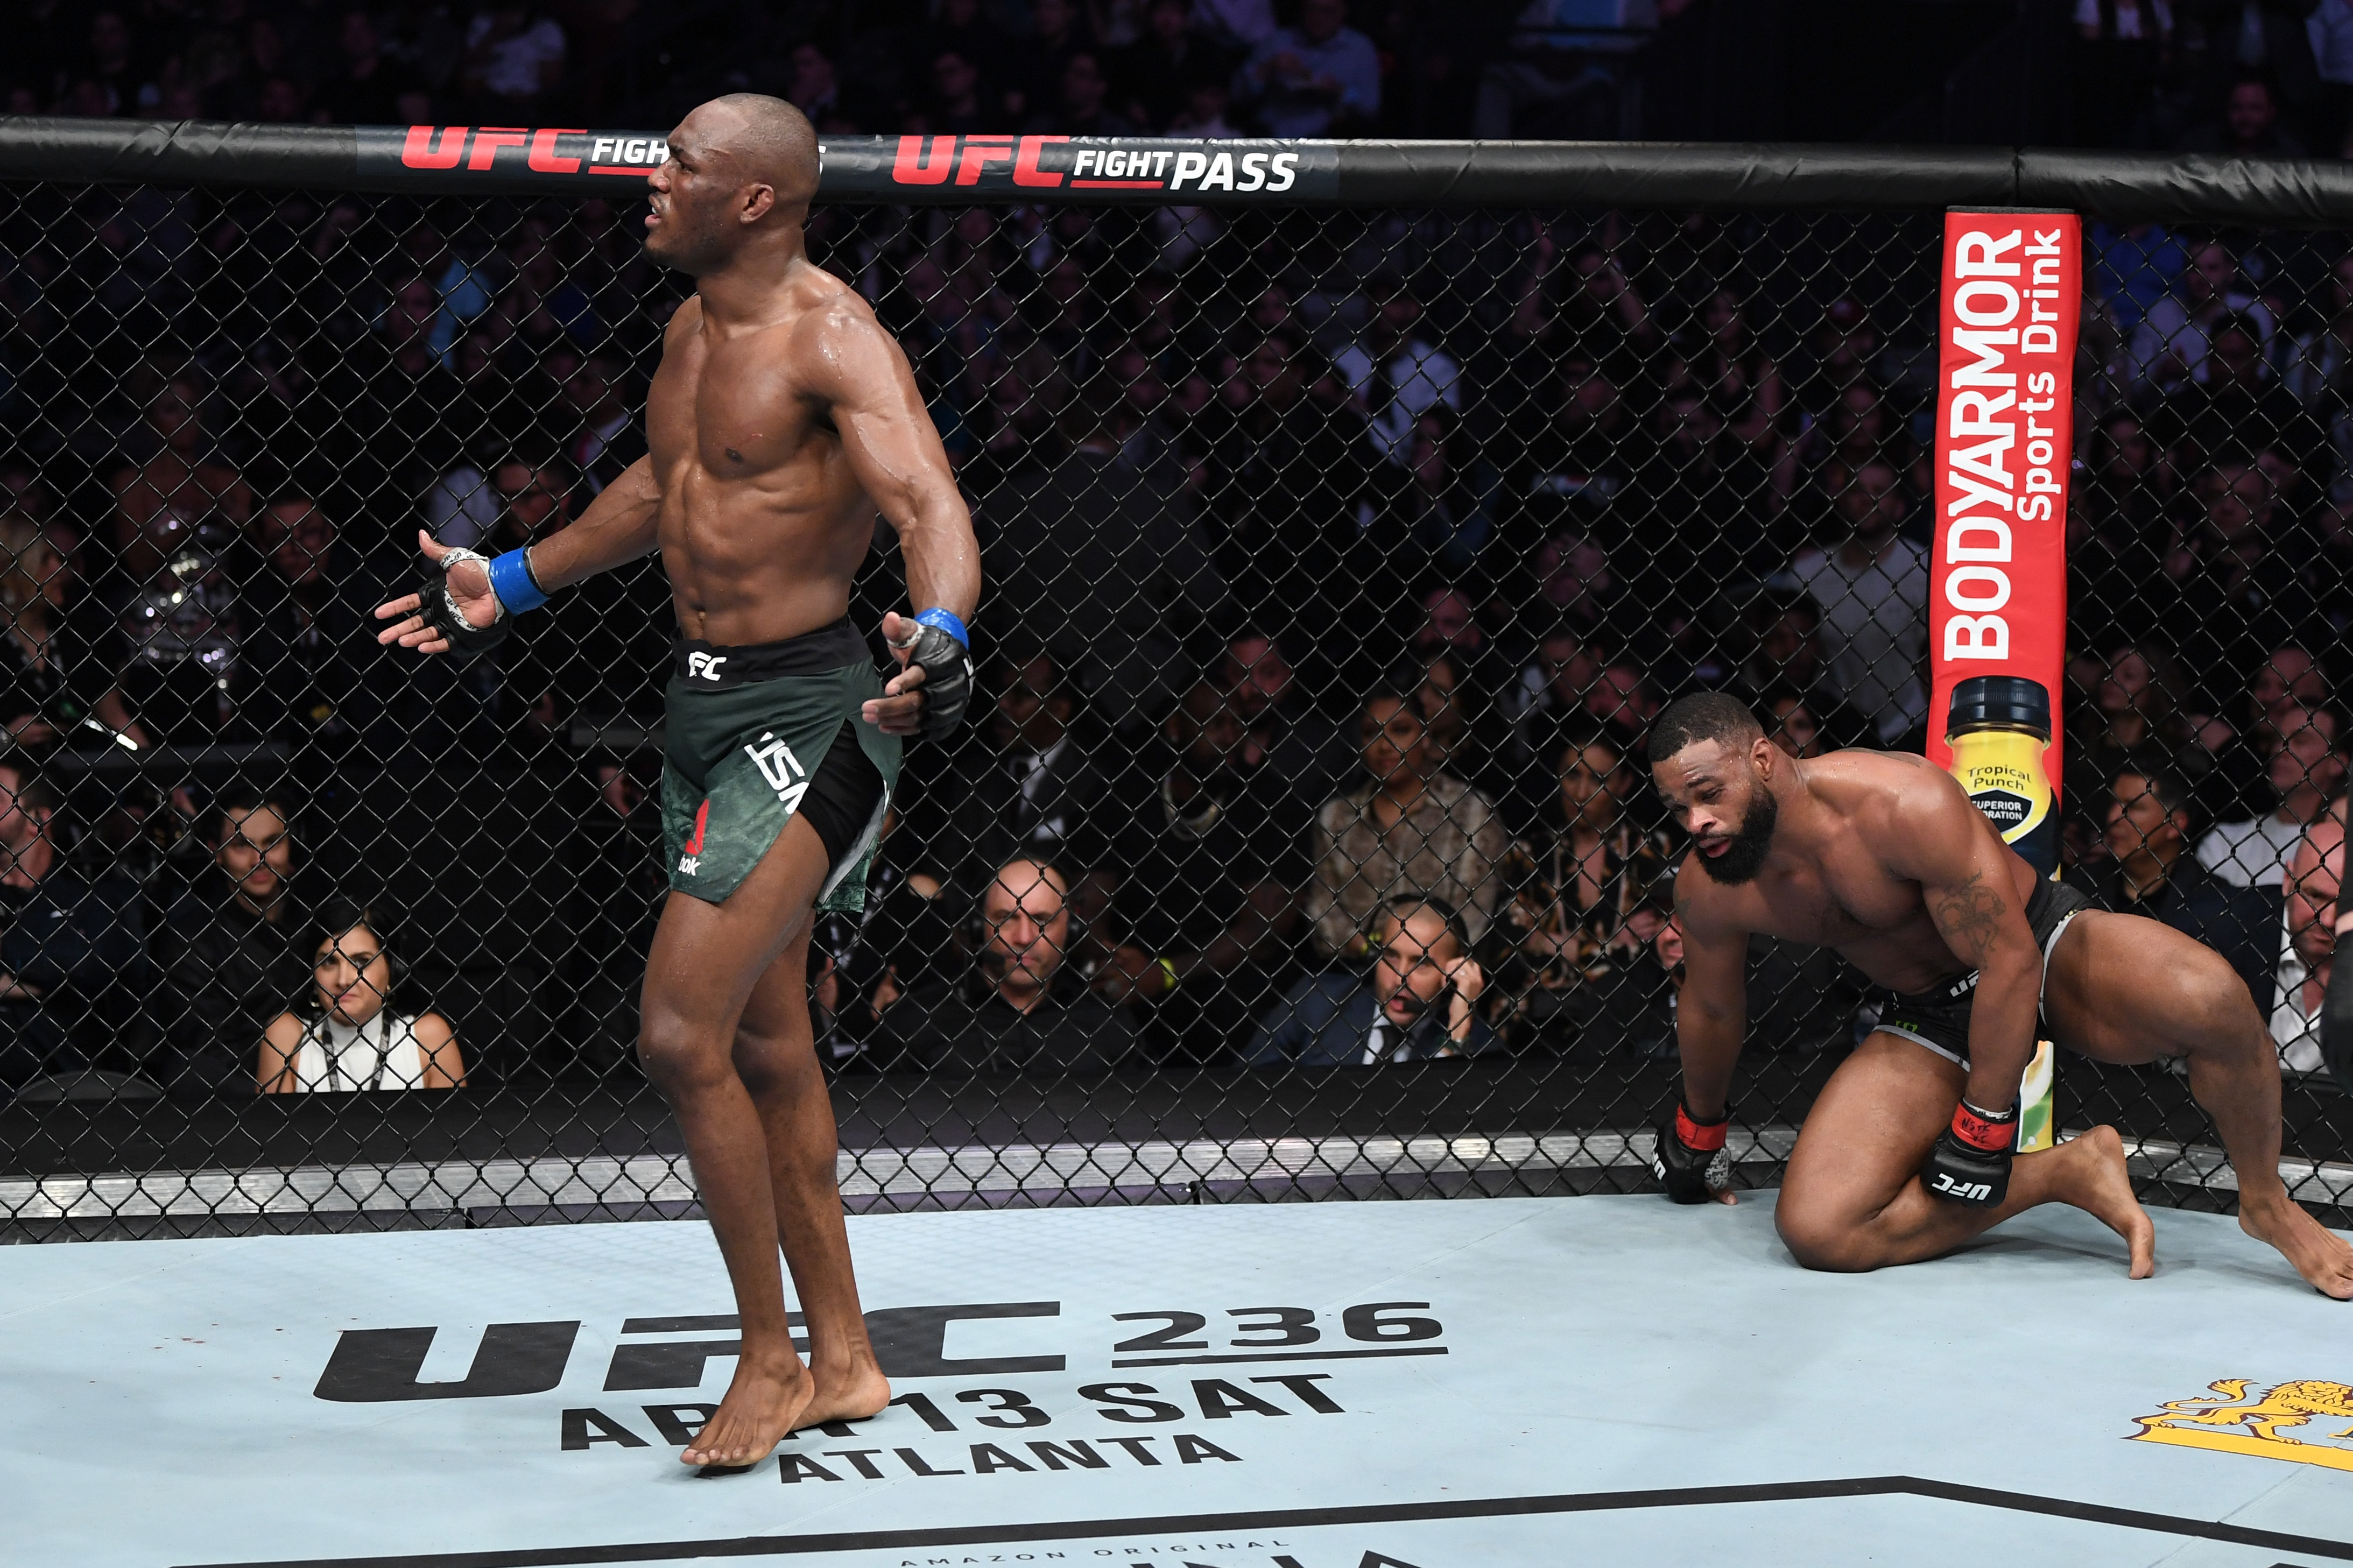 Kamaru Usman dominated Tyron Woodley at UFC 235 to become the undisputed welterweight champion.